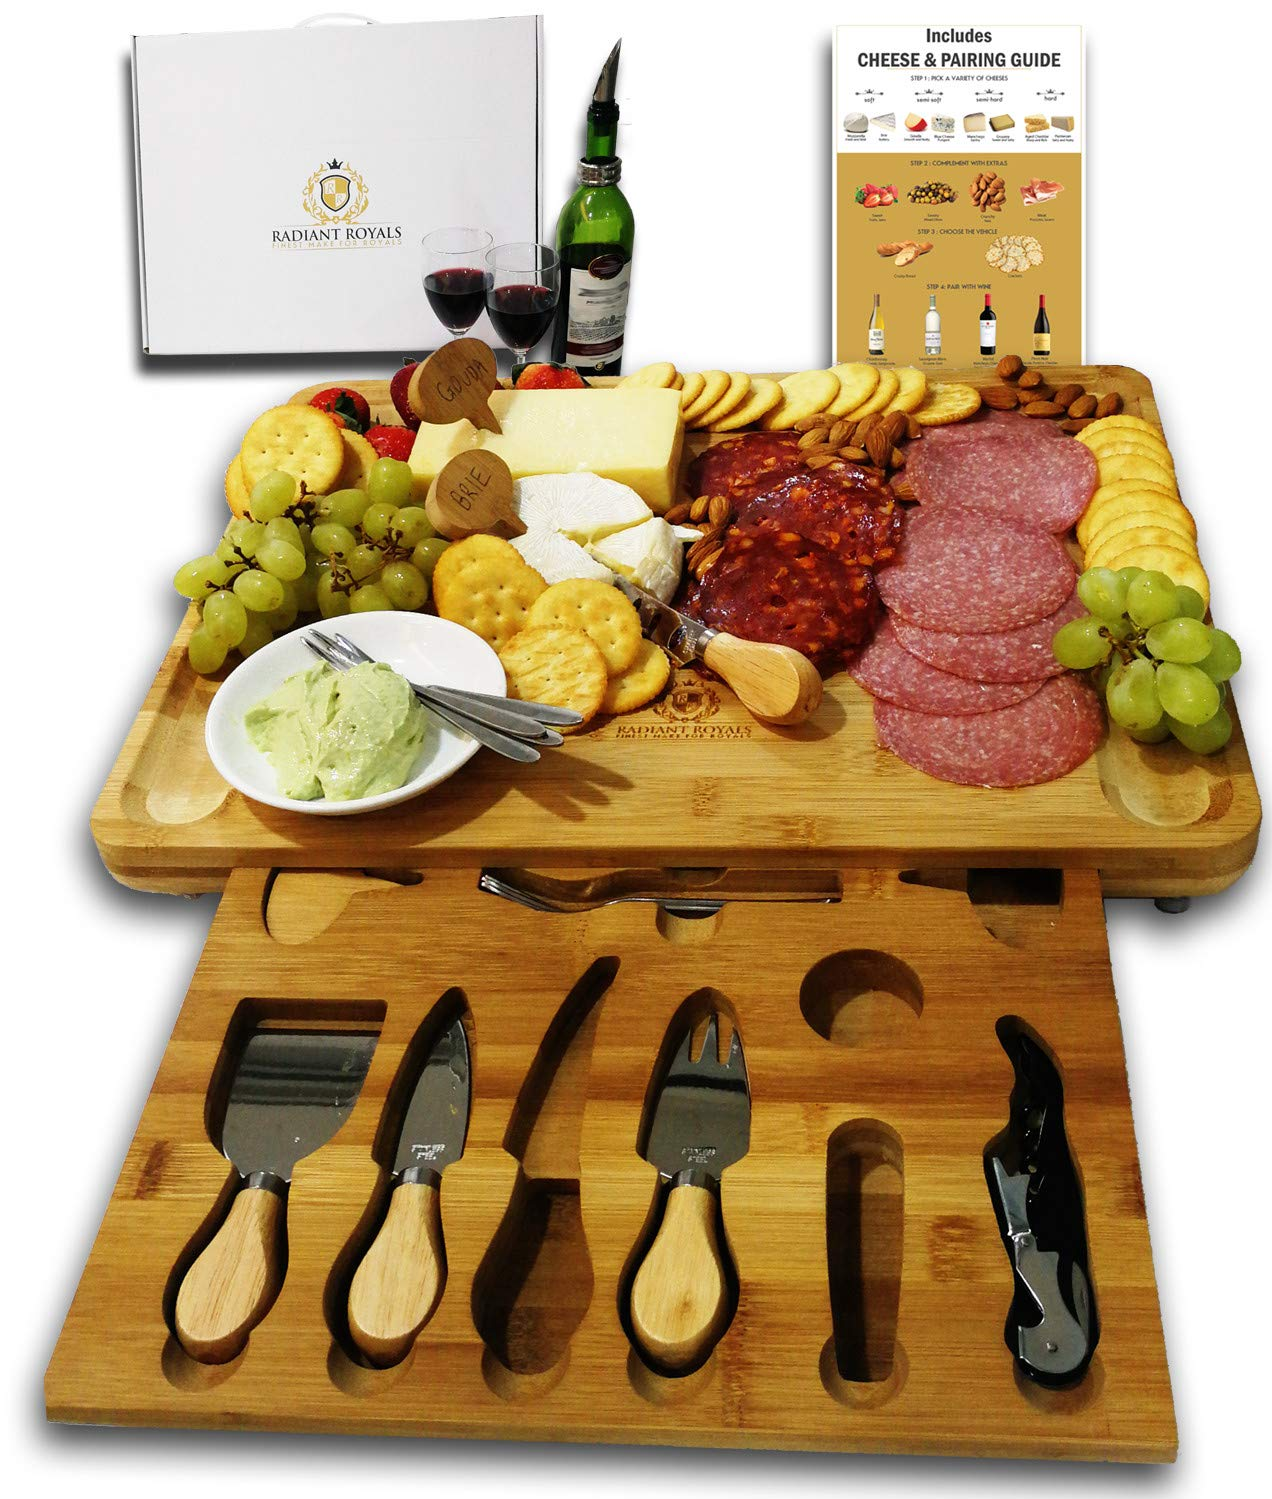 Extra Large Bamboo Cheese Board with drawer holding 19-accessories incl knives, forks, markers and Wine Accessories Set | Great gift for Mother's Day, Women, Wedding, Housewarming, Birthday